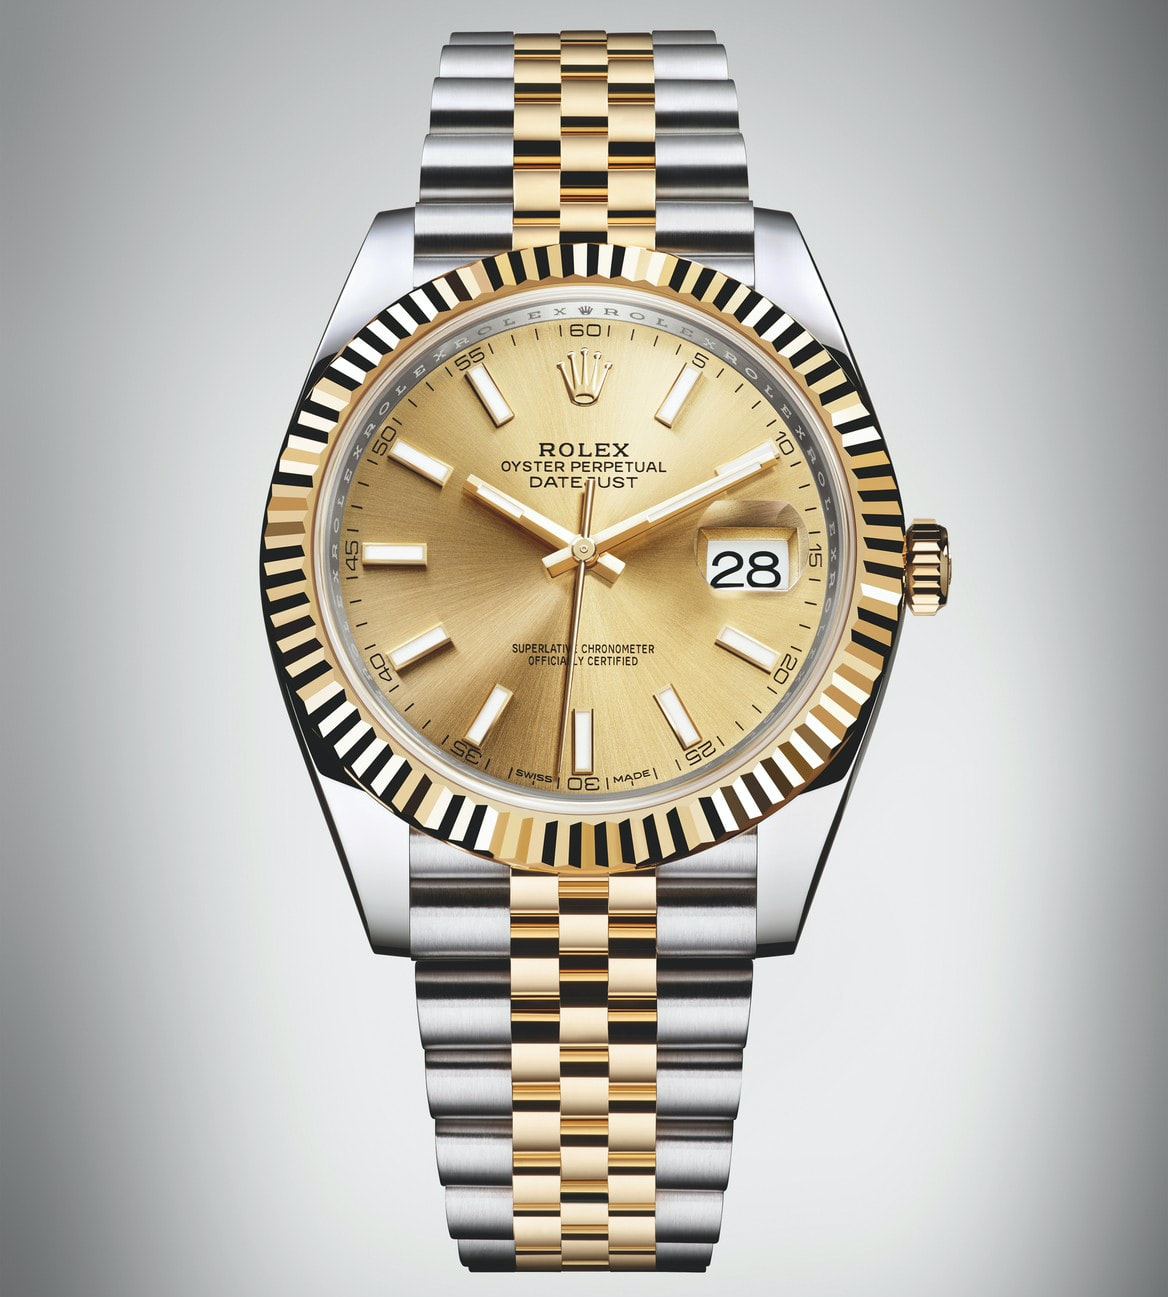 Rolex Datejust 41mm Introducing: The New Rolex Datejust 41mm Introducing: The New Rolex Datejust 41mm zzz